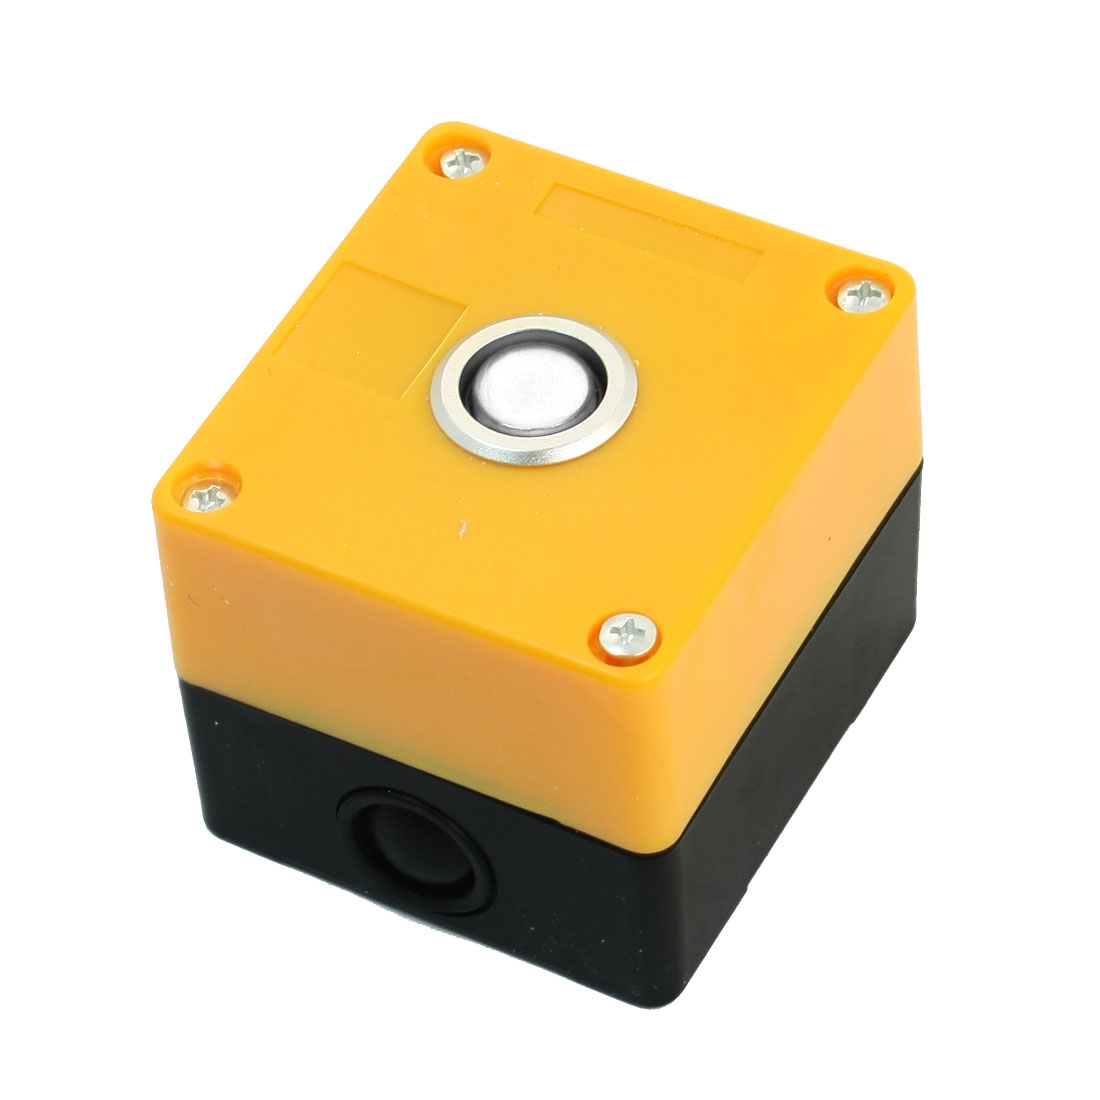 AC220V 5A SPDT 1NO 1NC Momentary Warm White Lamp Rectangle Yellow Plastic Case Push Button Station Switch Control Box